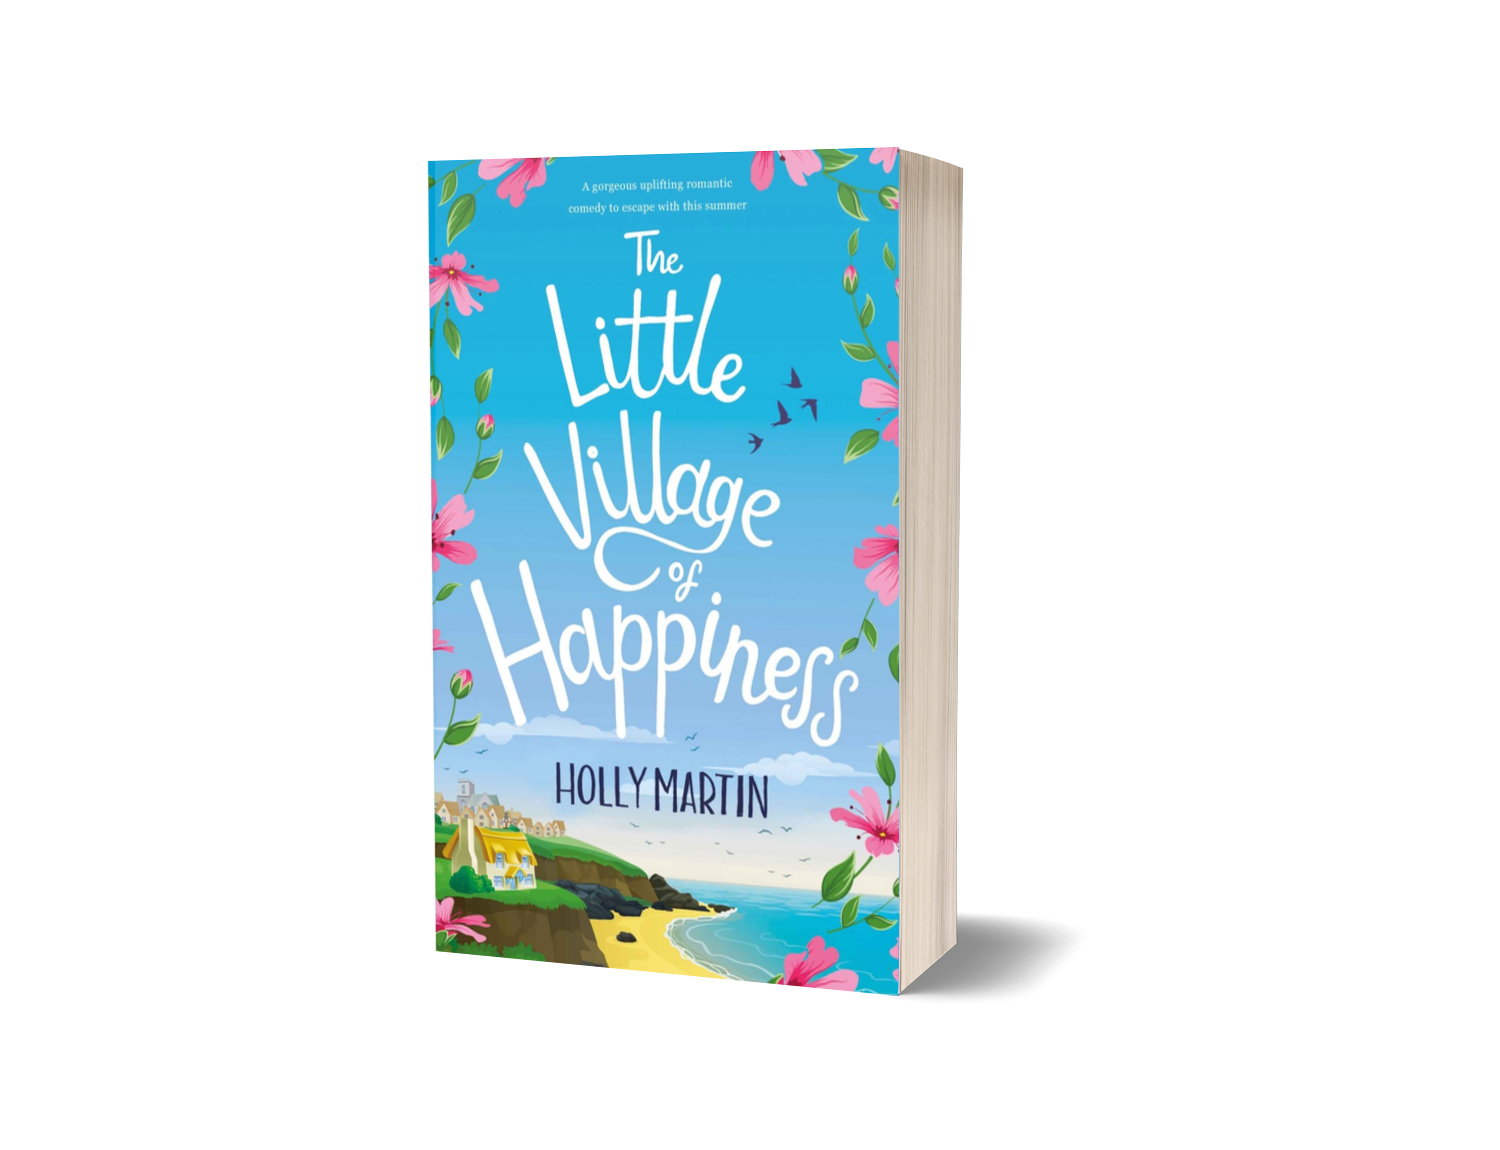 Image of Signed paperback The Little Village of Happiness